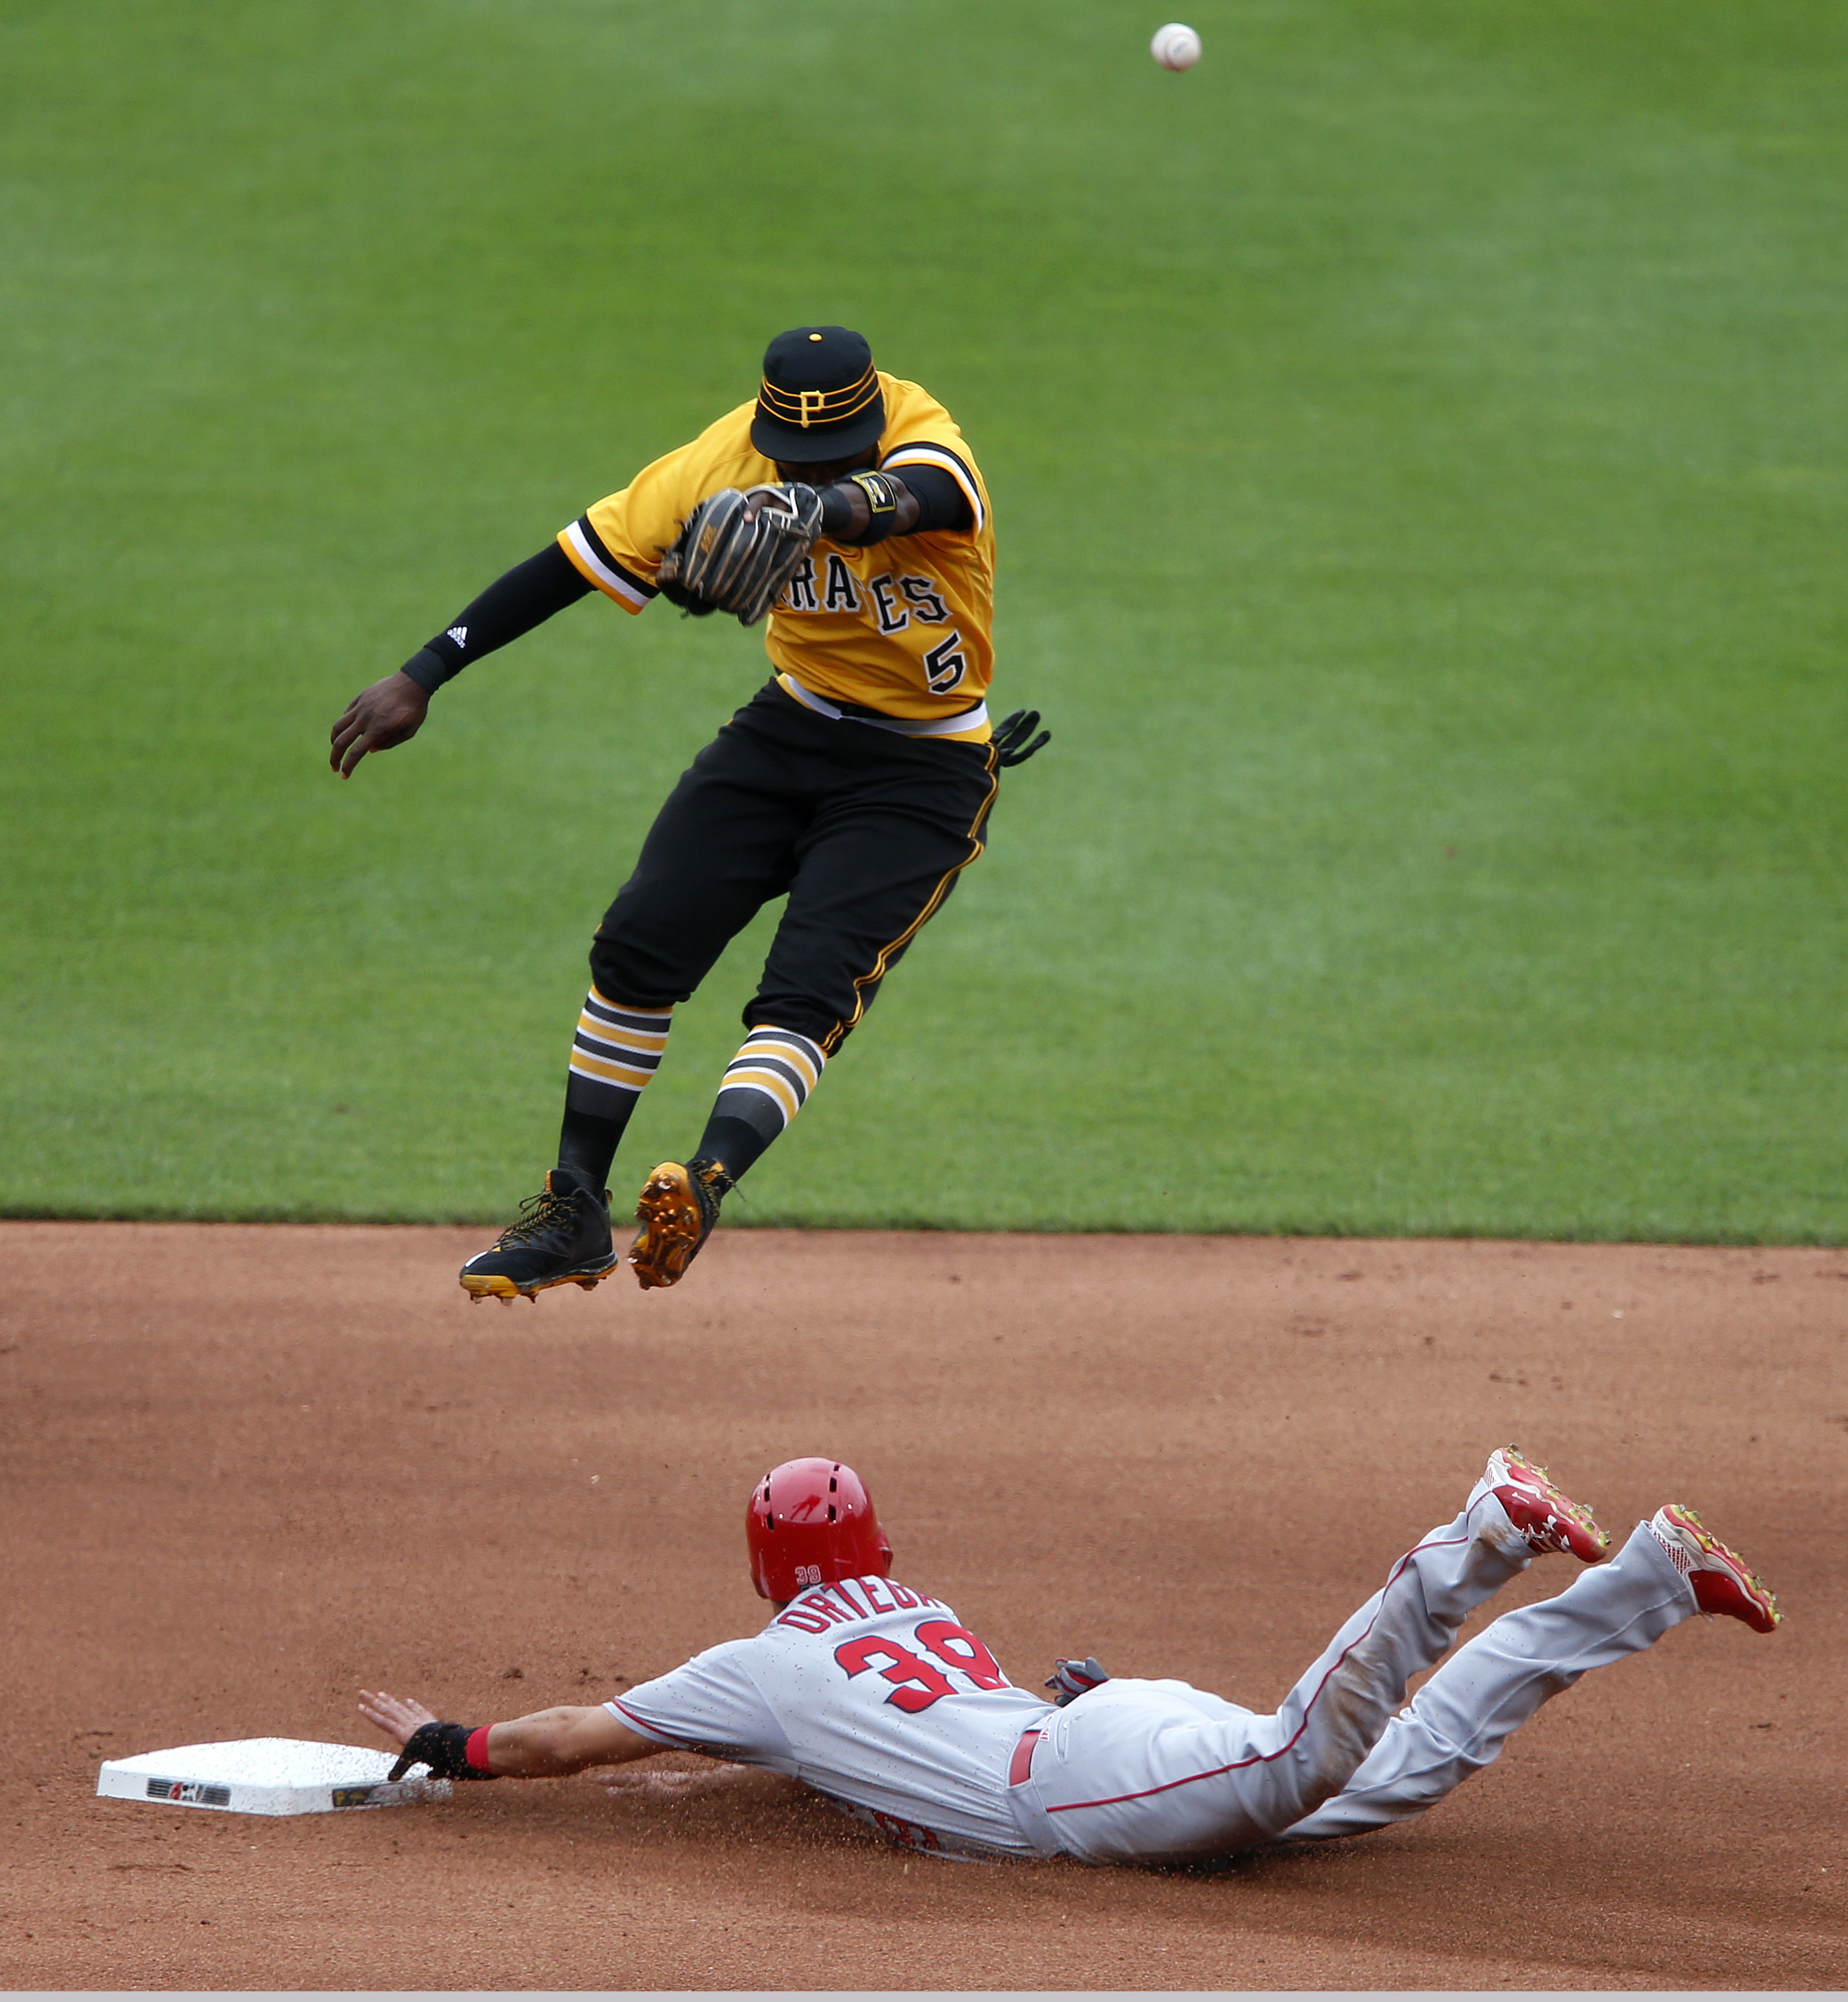 Los Angeles Angels' Rafael Ortega (39) steals second as Pittsburgh Pirates second baseman Josh Harrison (5) leaps for but cannot reach a high throw from catcher Chris Stewart during the fourth inning of a baseball game in Pittsburgh, Sunday, June 5, 2016.